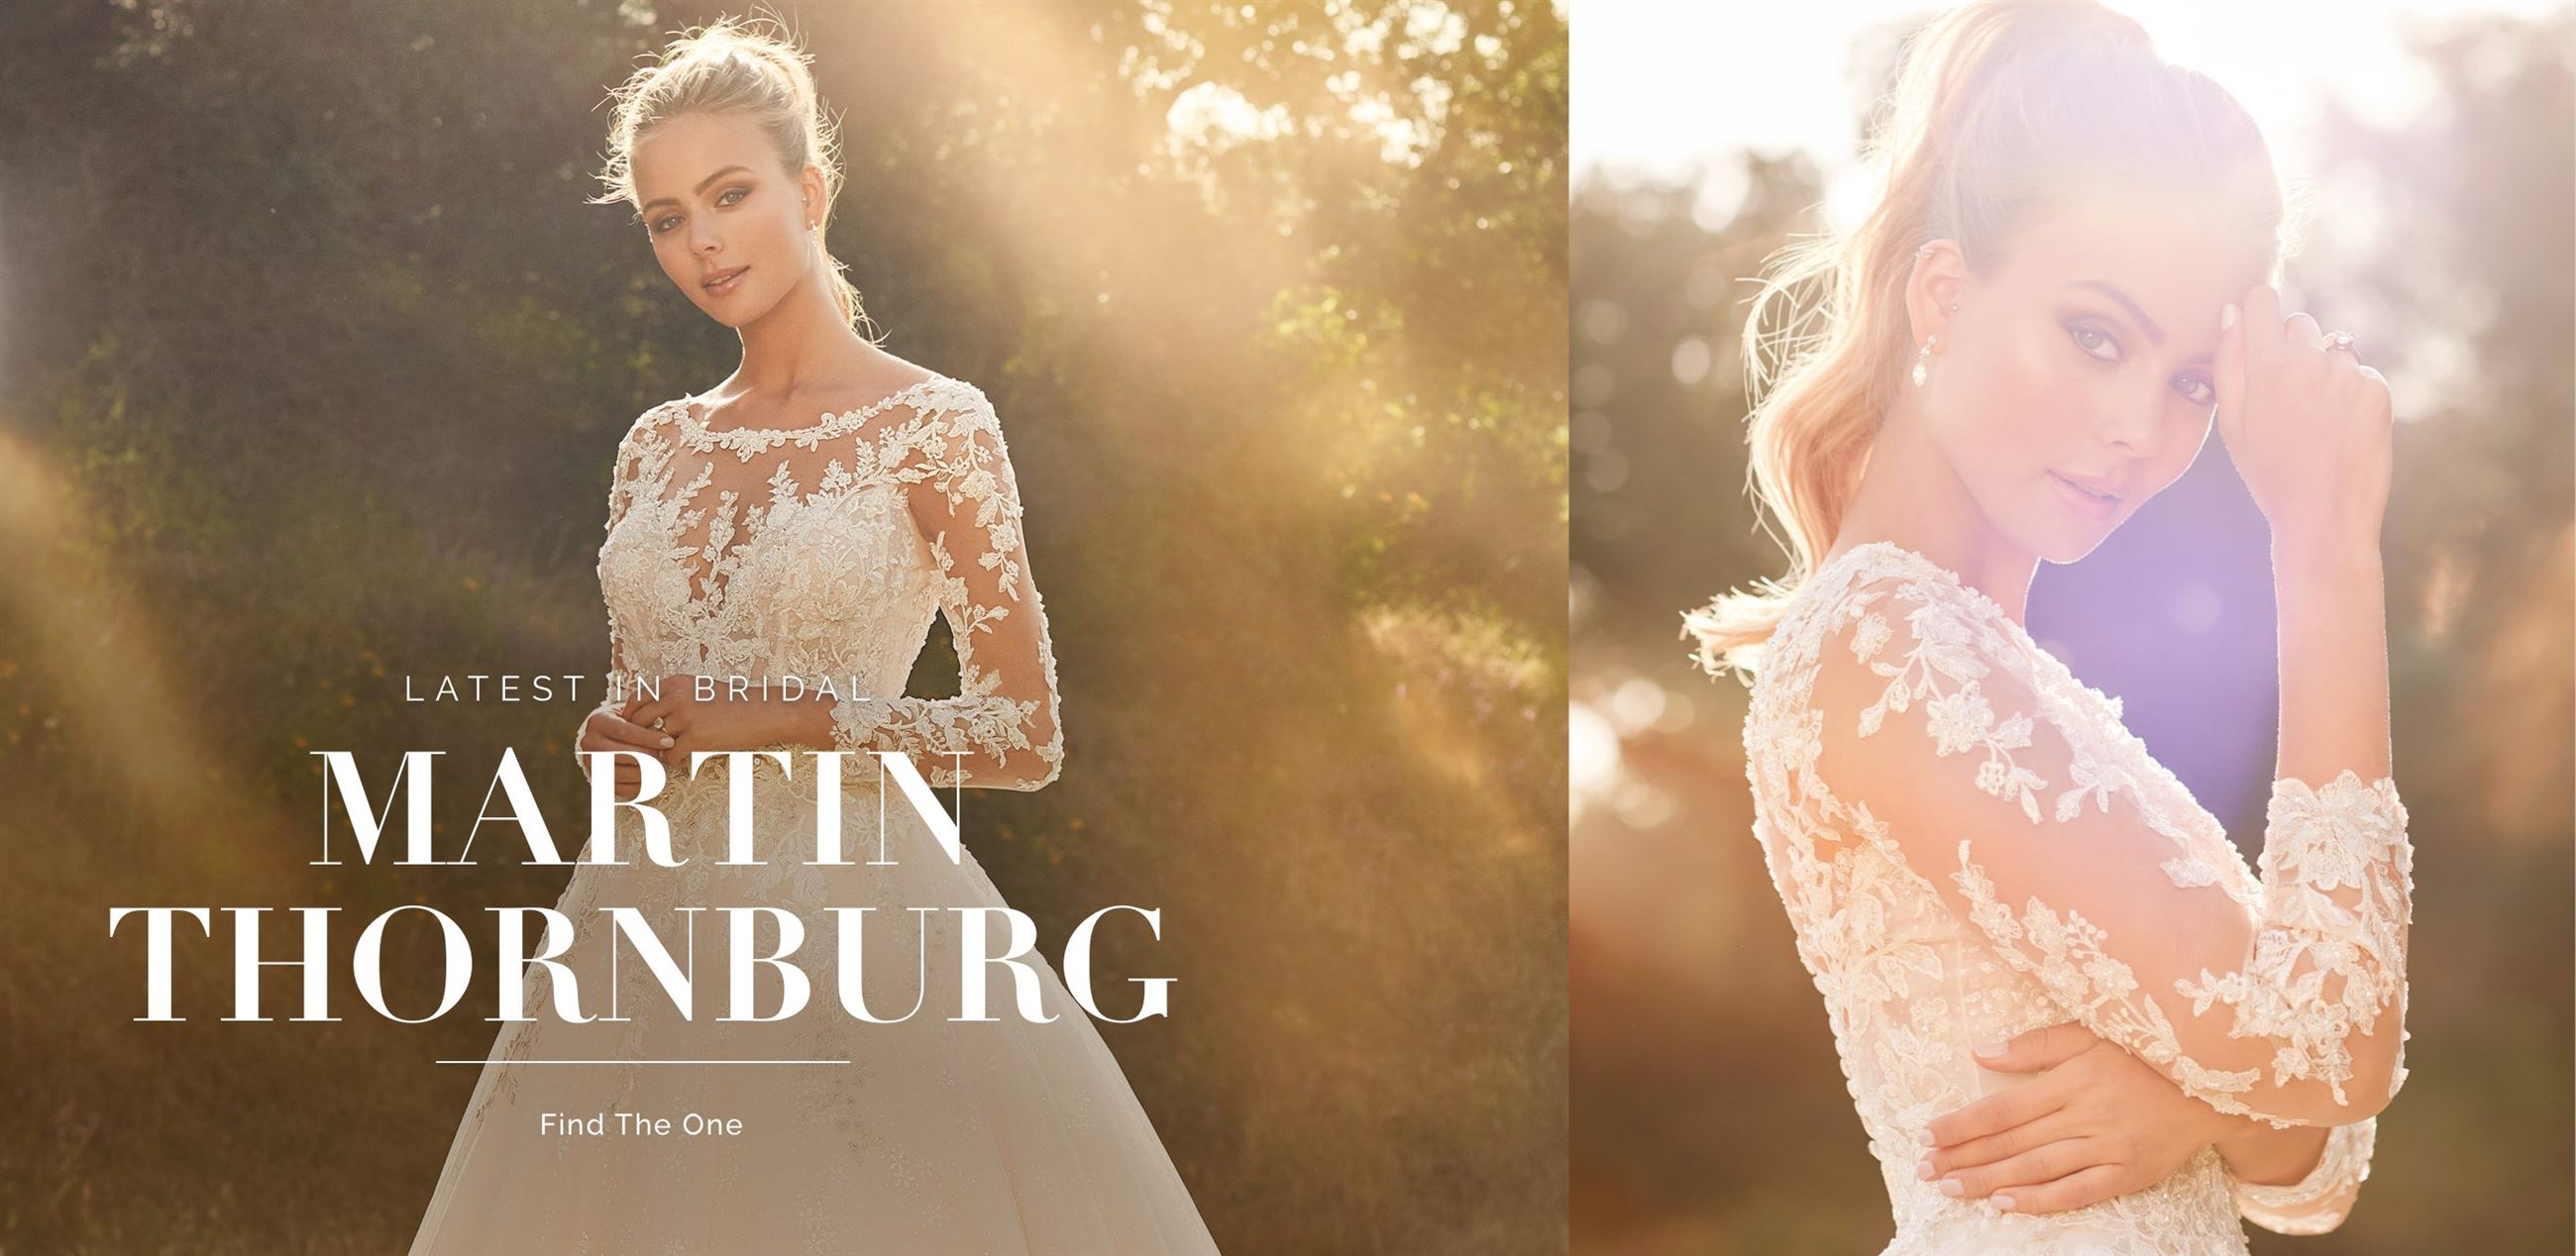 Banner for Martin Thornburg collection. Model wearing long sleeve floral and lace wedding dress